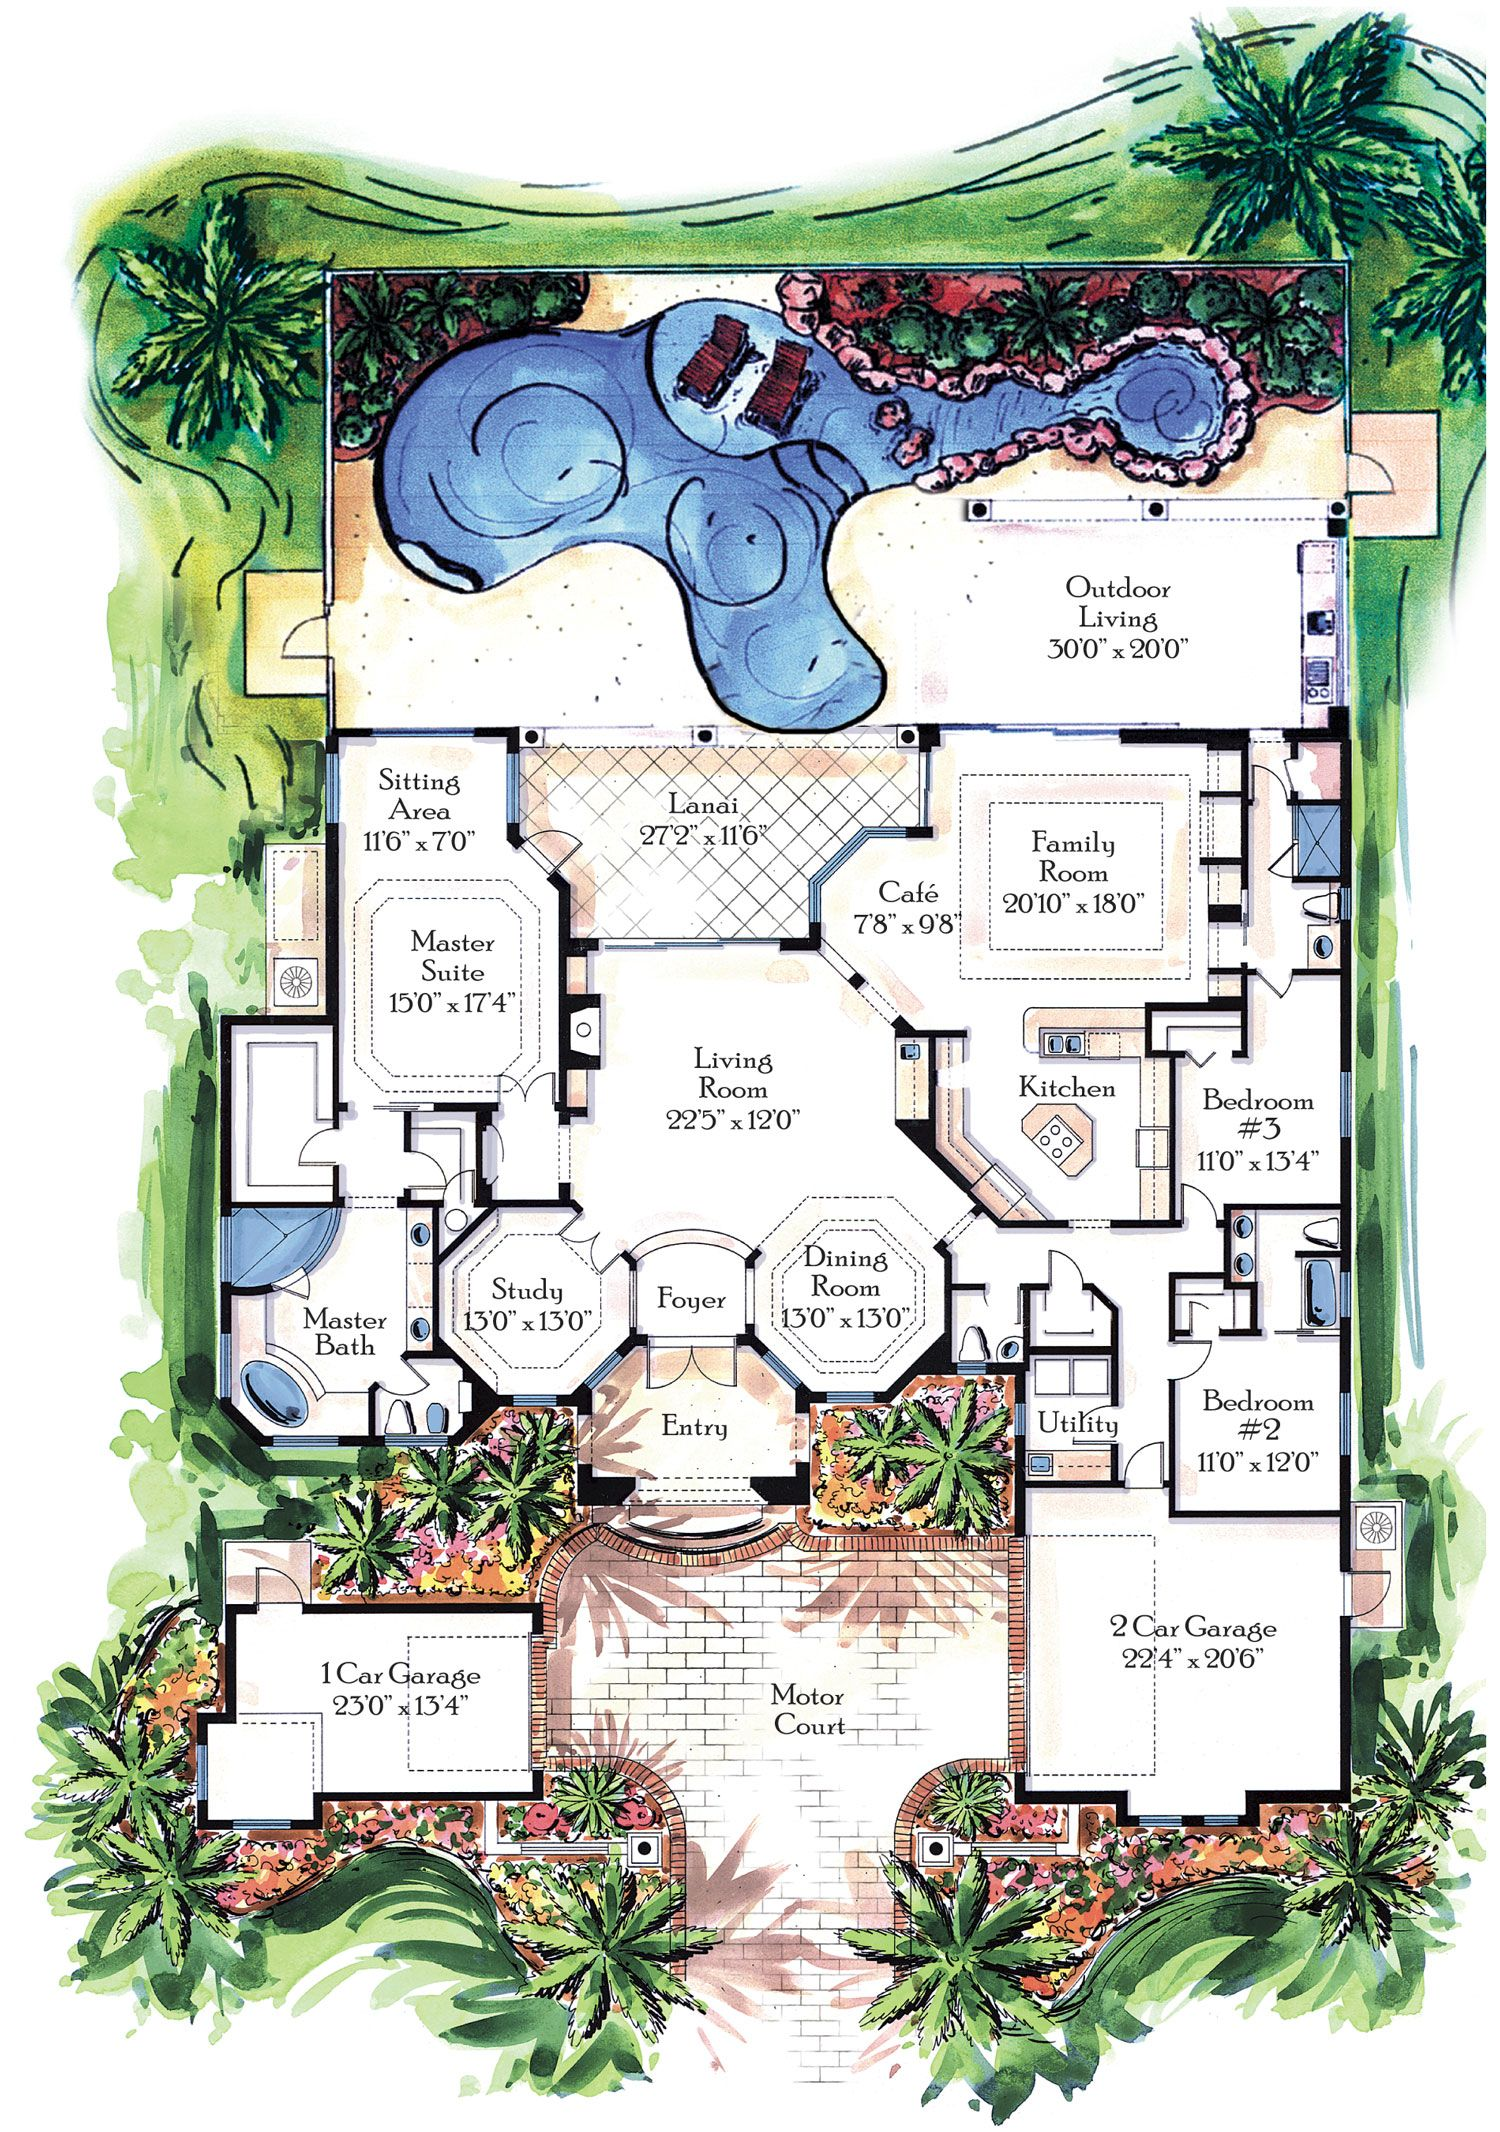 High End House Plans ultra luxury house plans t lovely luxury house floor plans designs